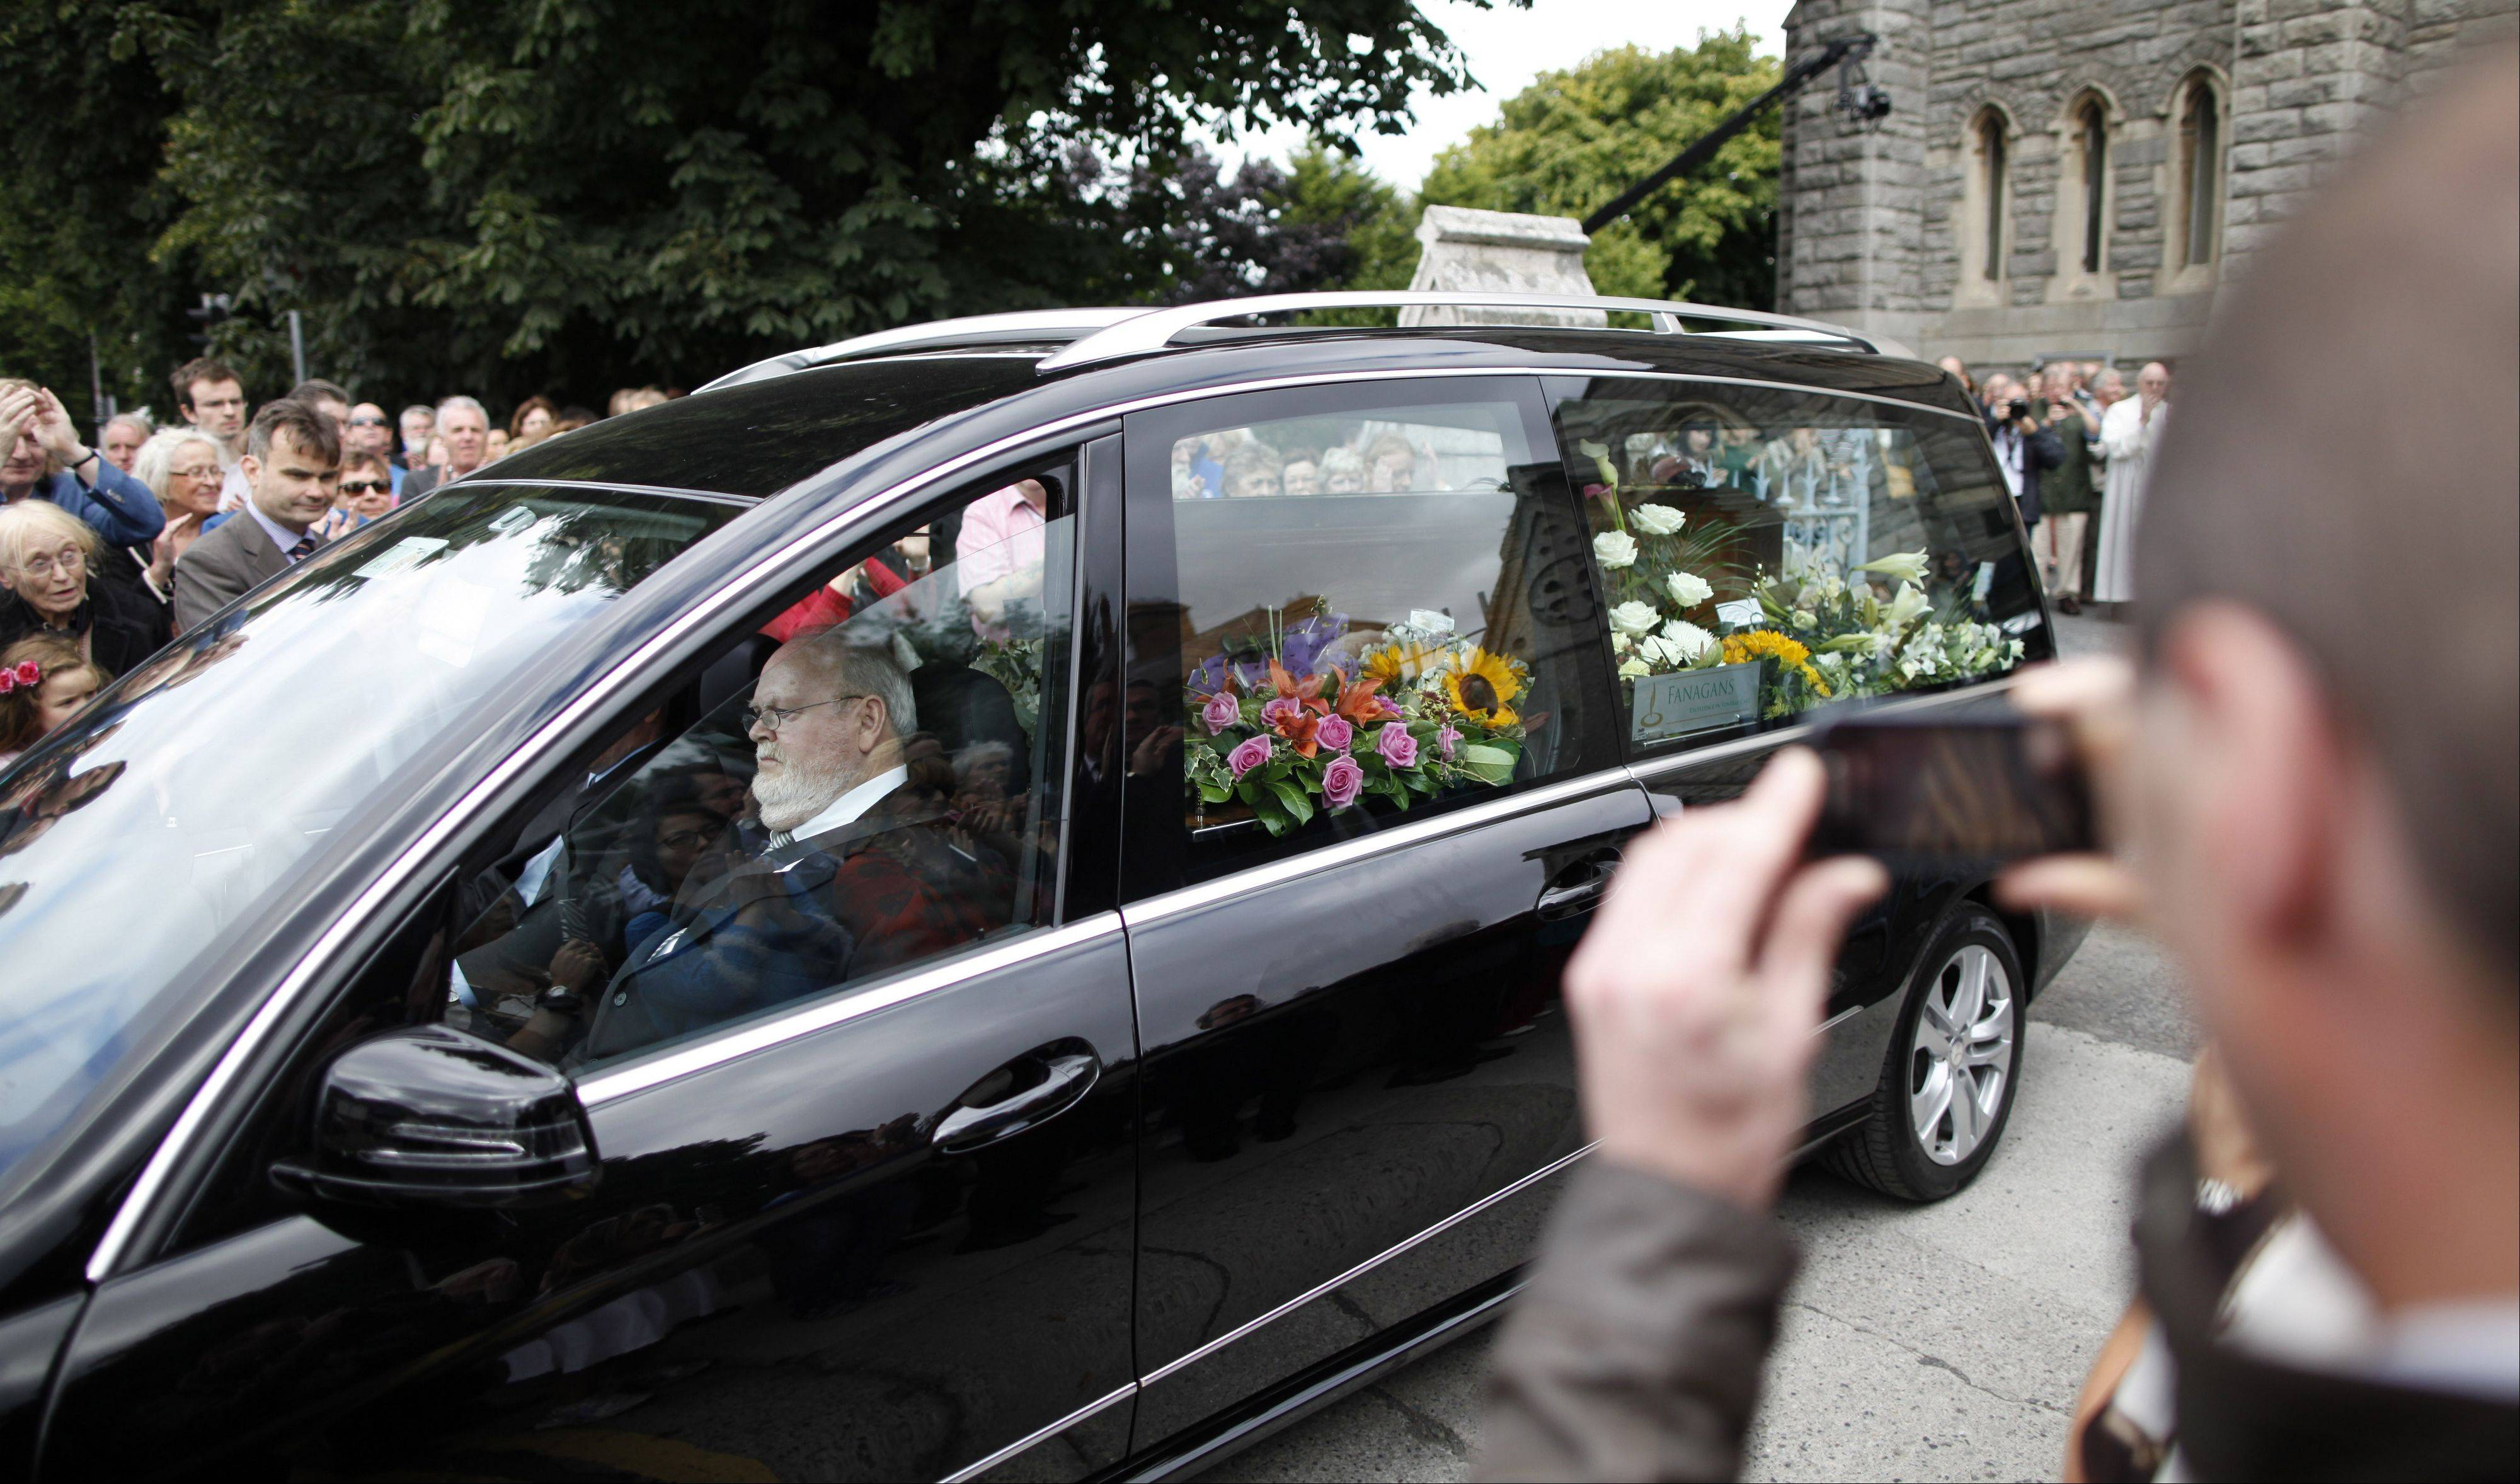 People watch the coffin of Irish poet Seamus Heaney leave the Church of the Sacred Heart in Donnybrook, Dublin, Ireland, Monday, Sept. 2, 2013. Heaney who died aged 74, won the 1995 Nobel Prize for Literature 'for works of lyrical beauty and ethical depth, which exalt everyday miracles and the living past'. He was widely considered Ireland's greatest poet since William Butler Yeats.